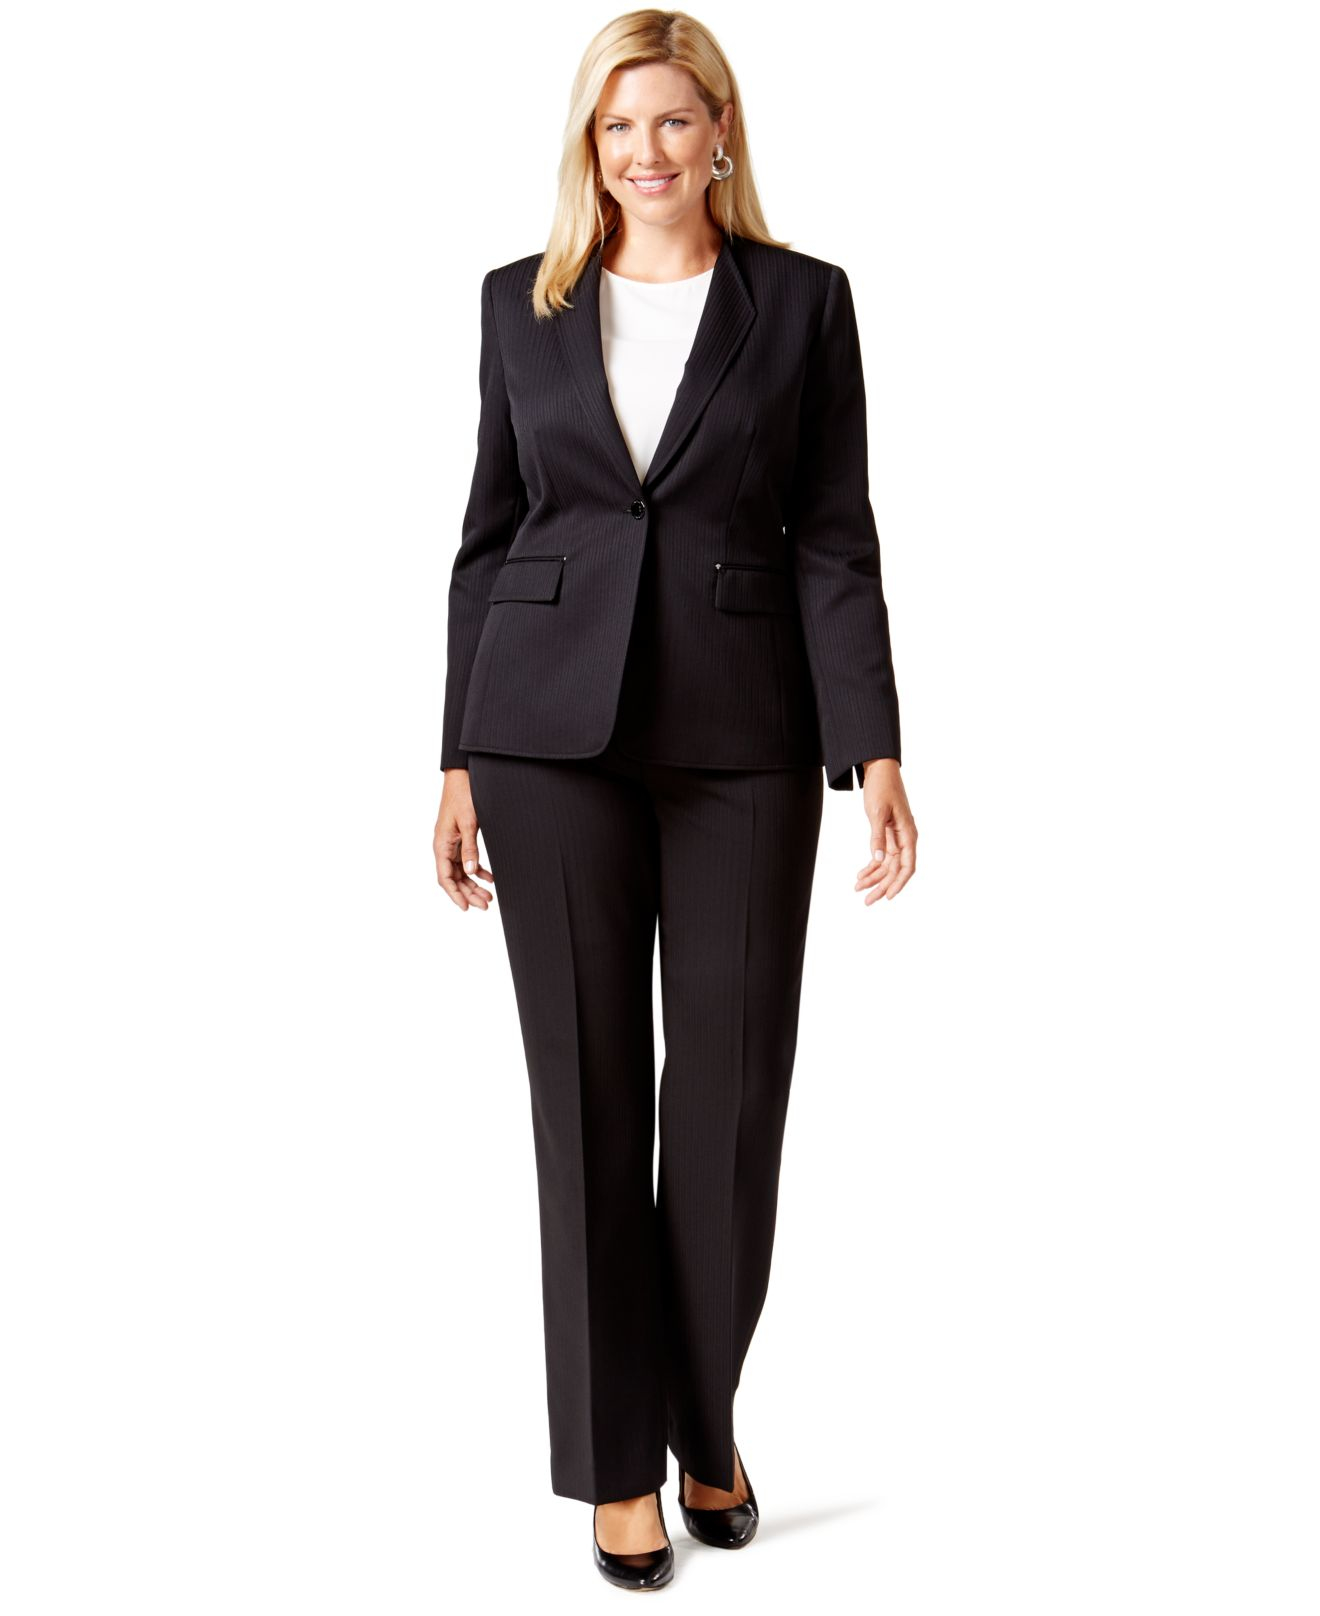 tahari plus size one button pinstriped pantsuit in black lyst gallery